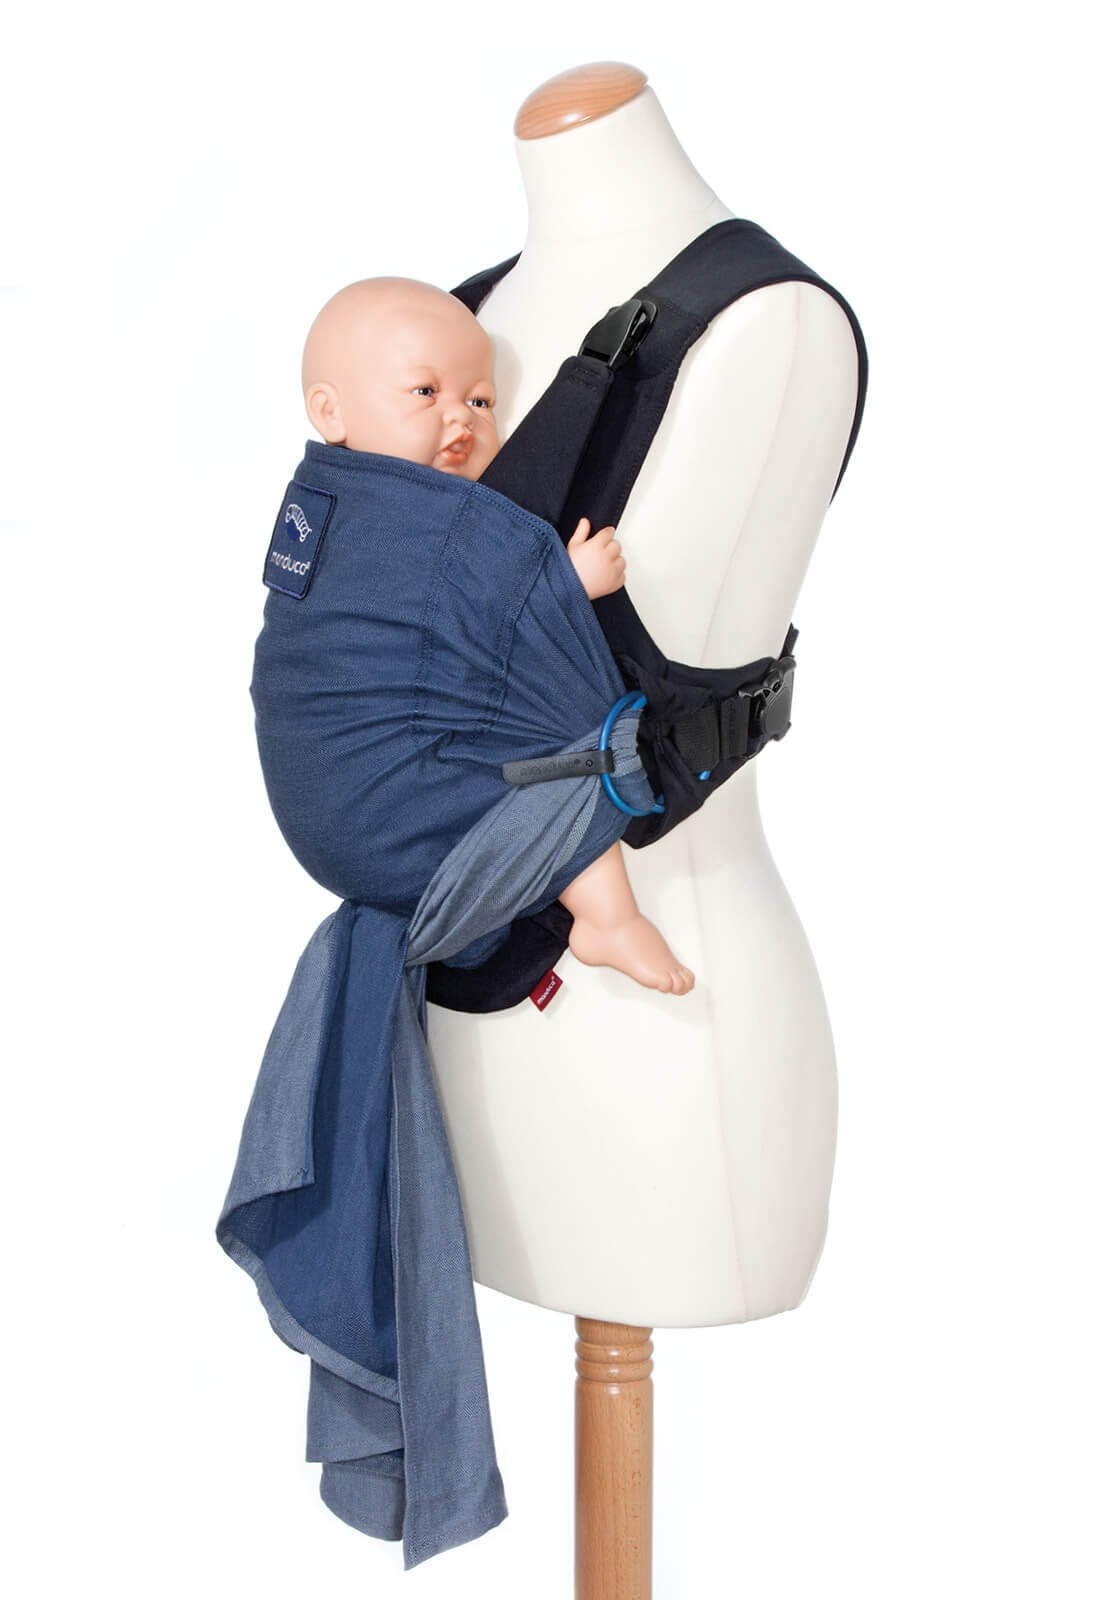 manduca Duo - Hybrid of Baby Carrier and Sling, Innovative Click &Tie System, Baby Slip-Through-Protection, Removable Hip Belt, Organic Cotton and Mesh, from Birth to 15kg (Blue) Manduca Optimized as front carrier, with slip-through protection (secure fit for your baby), supports the M position, for newborns from birth to infants up to 15 kg Especially popular with first-time parents who find it difficult to choose between a sling and a comfort carrier with buckles. Easy to use, illustrated instructions Detachable hip belt, which is only zipped on when needed (up to 140cm circumference without belt extension). Ideal for mothers with sensitive belly and after cesarean section, good weight distribution, comfortable on the shoulders. 5